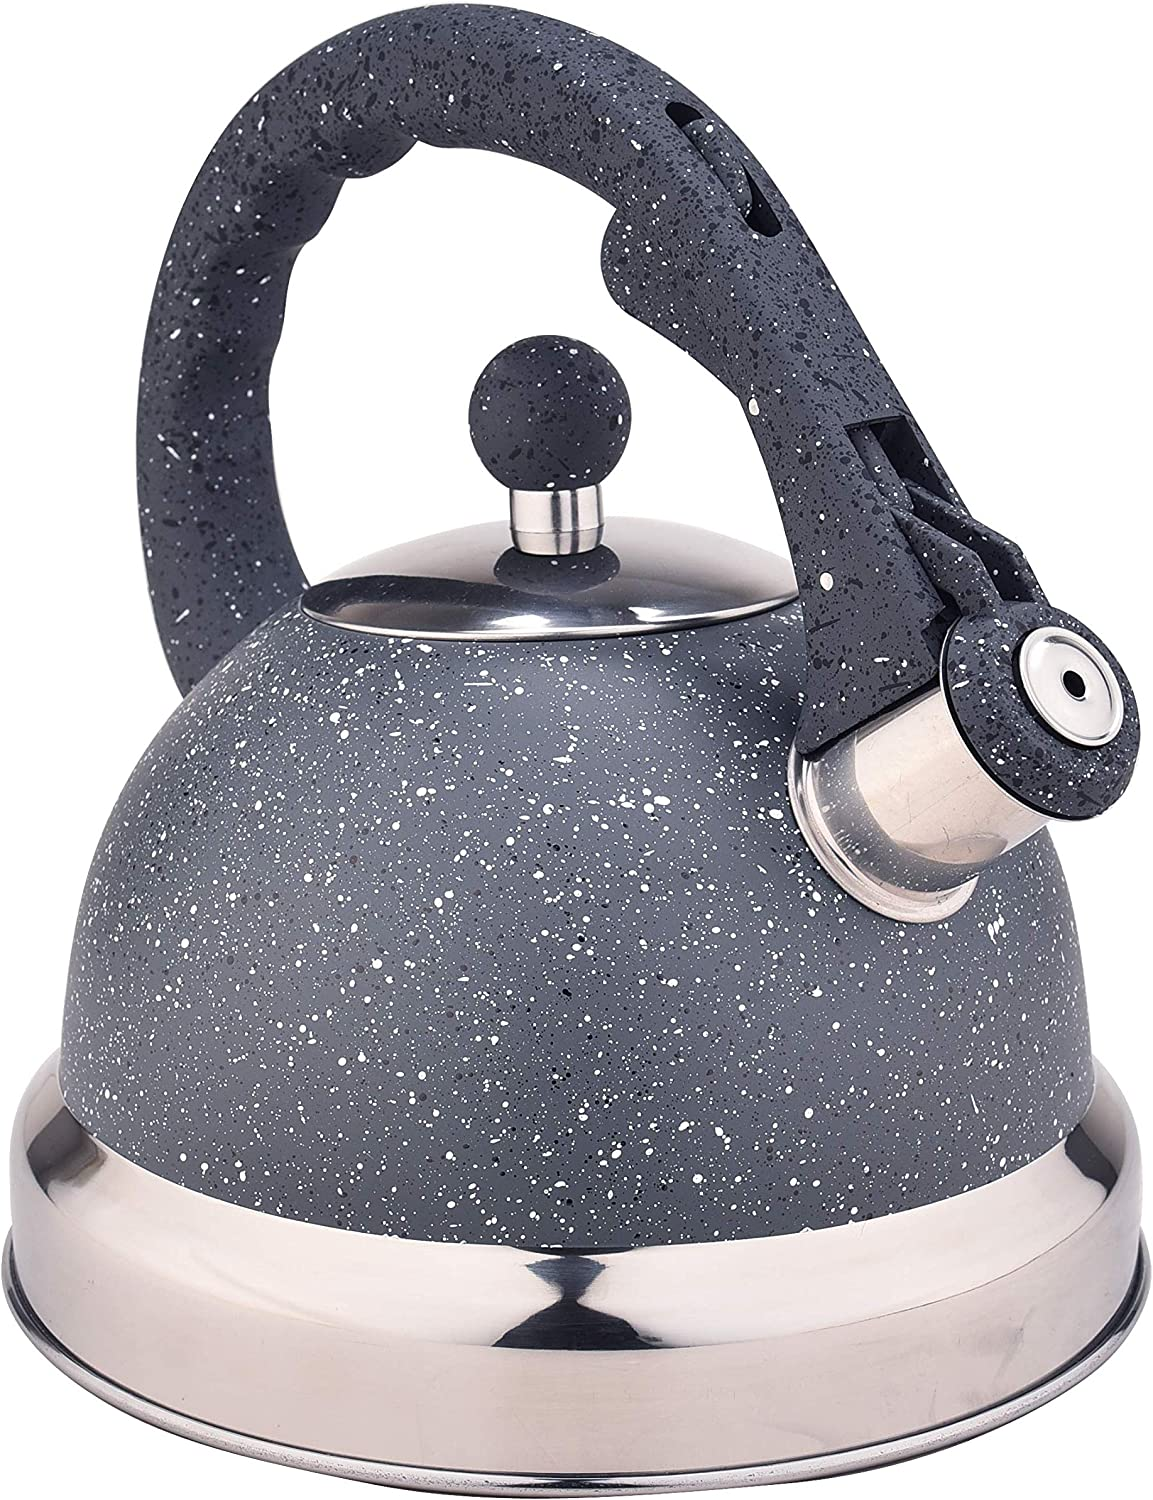 ARC Grey OFFicial Frosted Ranking TOP10 Stove Top kettle Food Grade Pot Tea